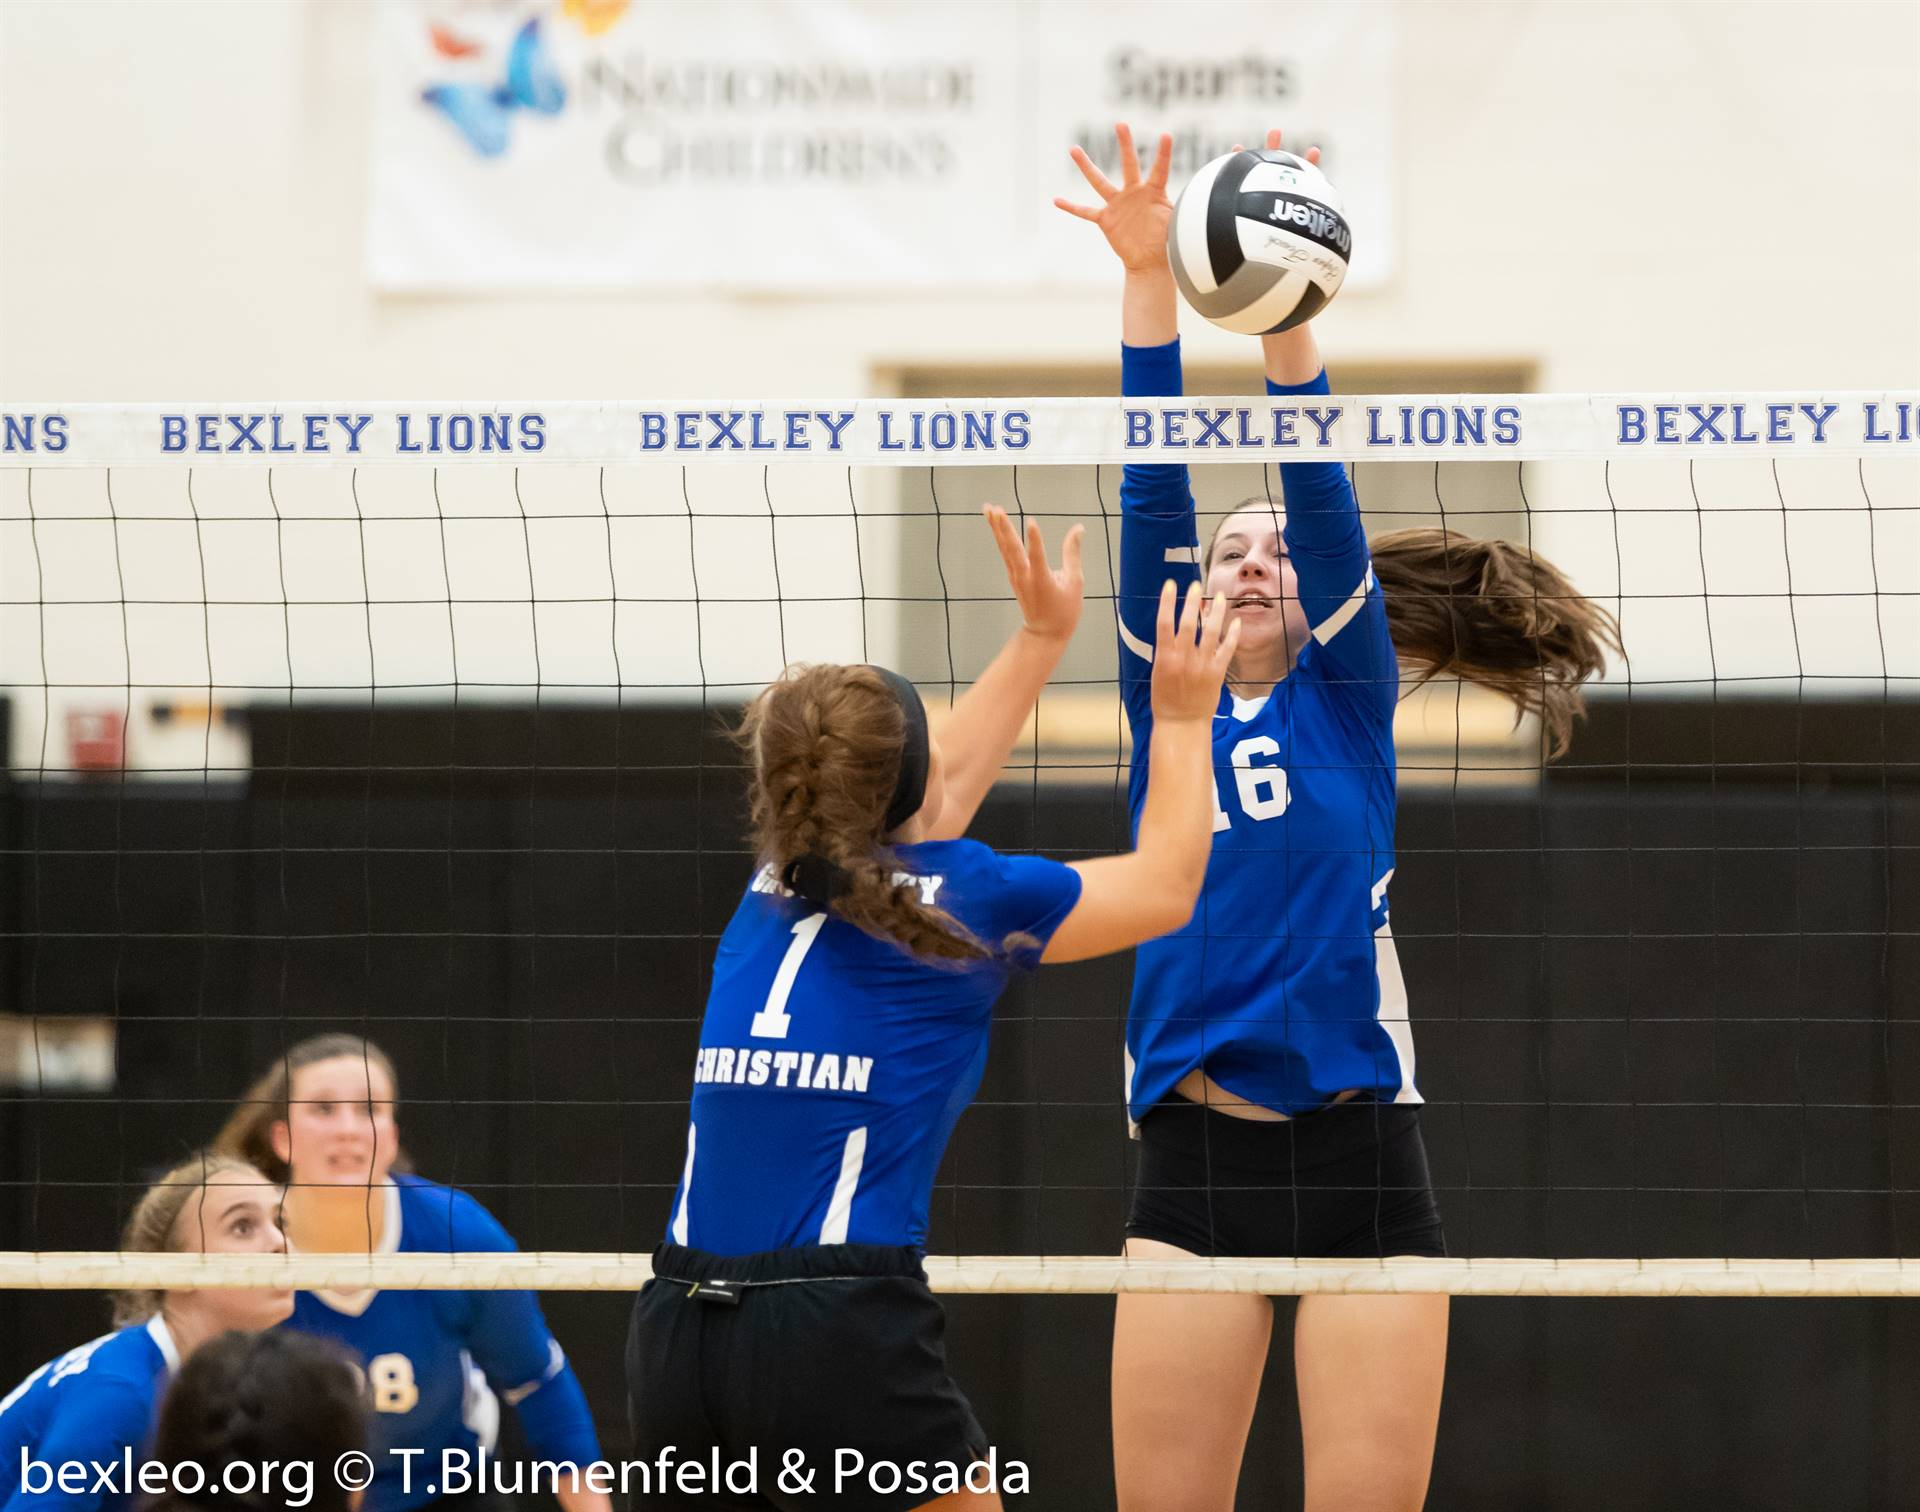 volleyball player blocking the ball at the net